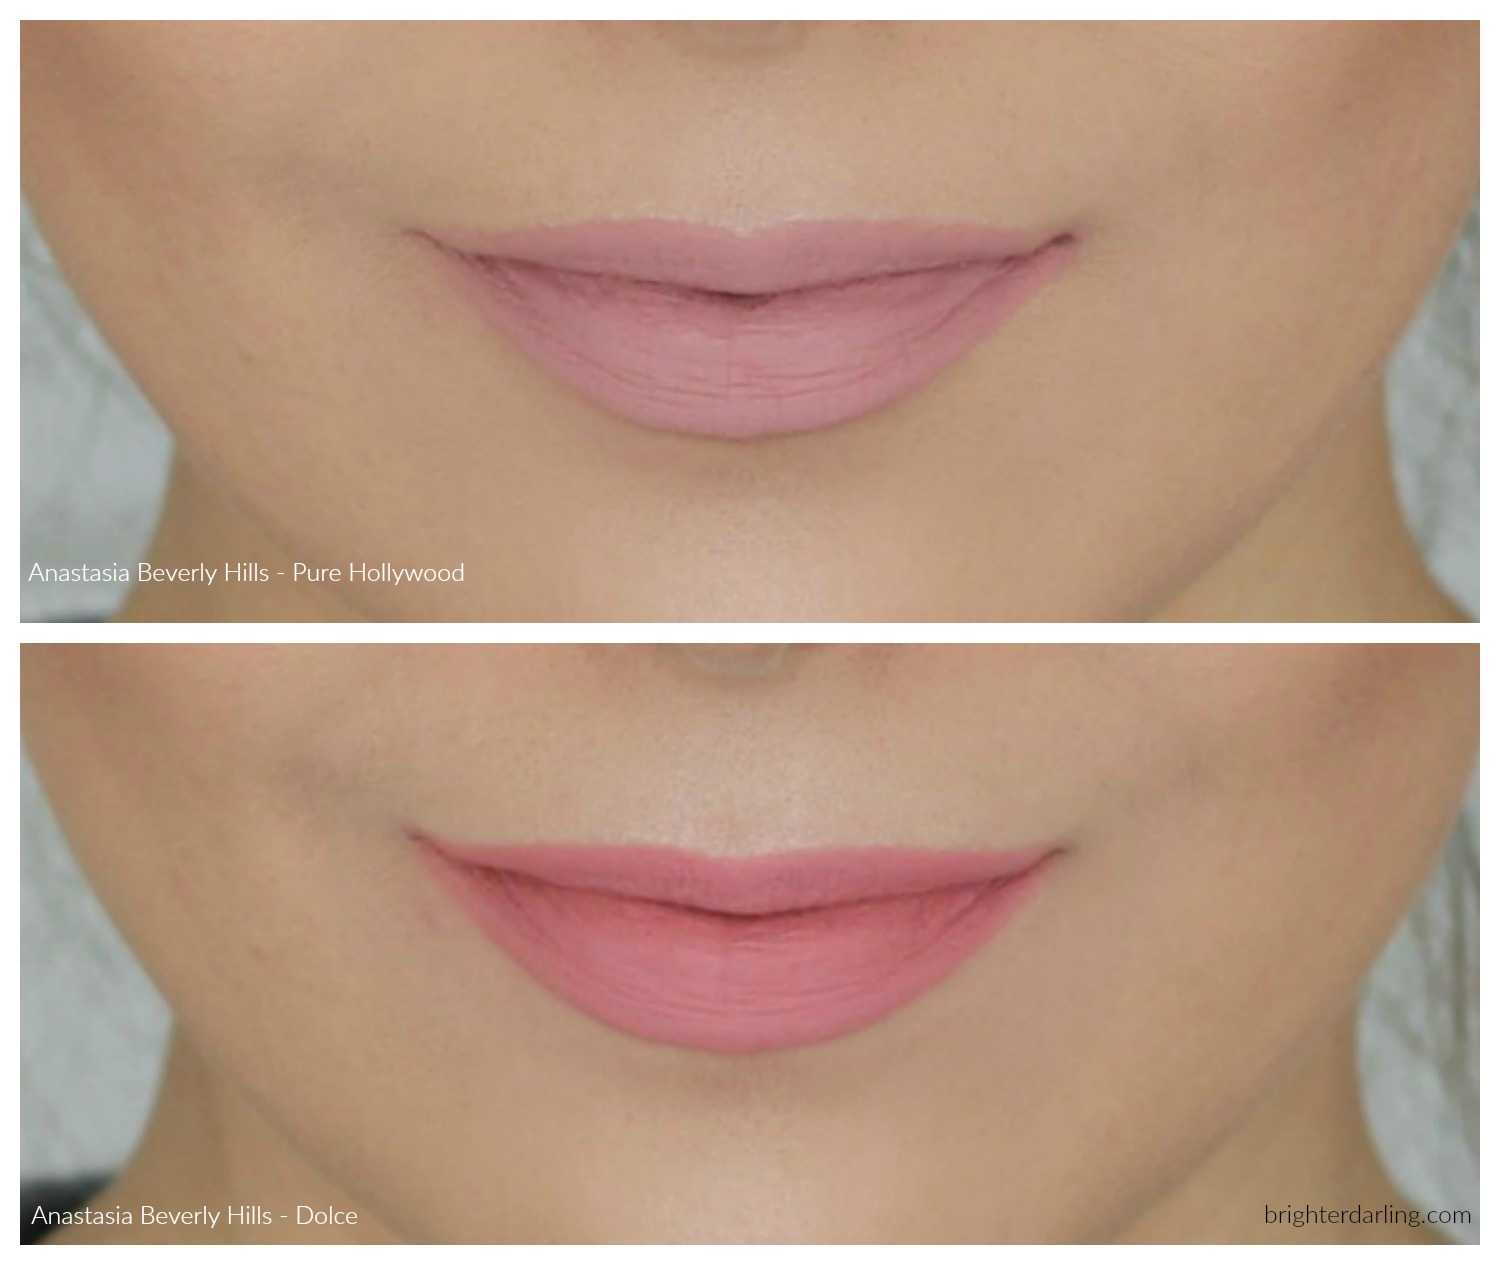 Anastasia Beverly Hills Liquid Lipstick Review - Pure Hollywood and Dolce